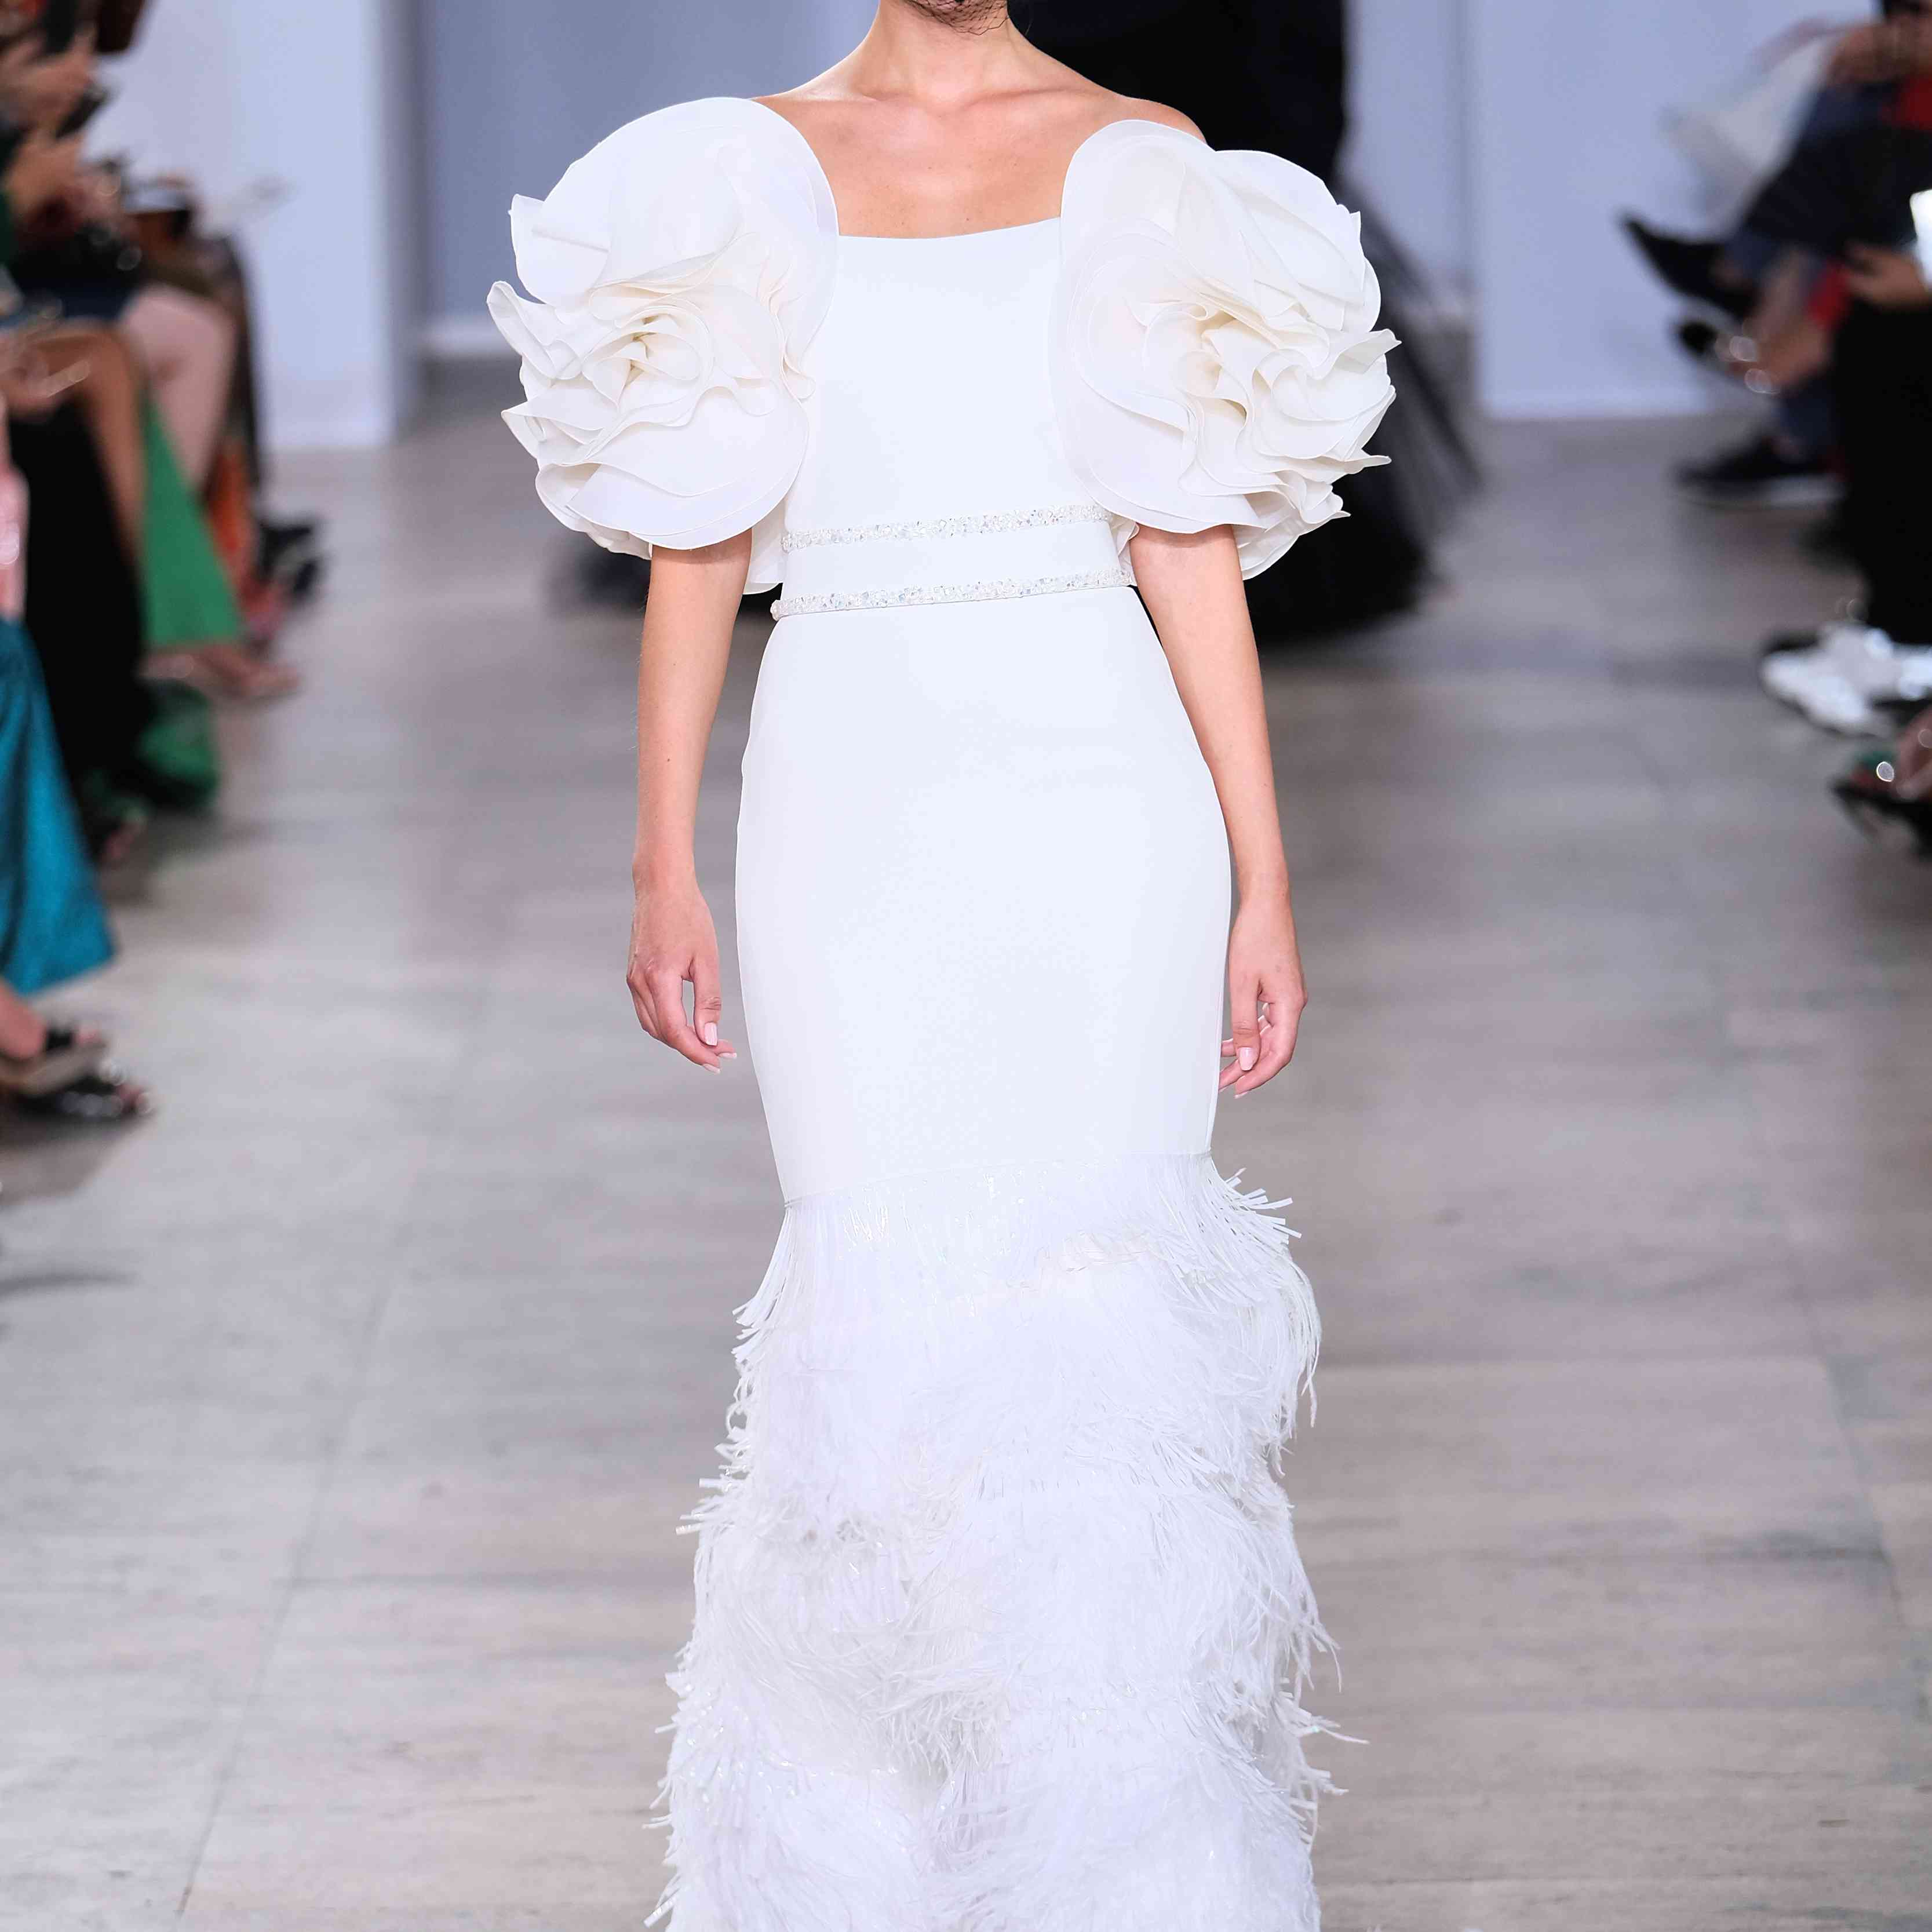 39 Wedding Dresses From Couture Fashion Week Every Bride